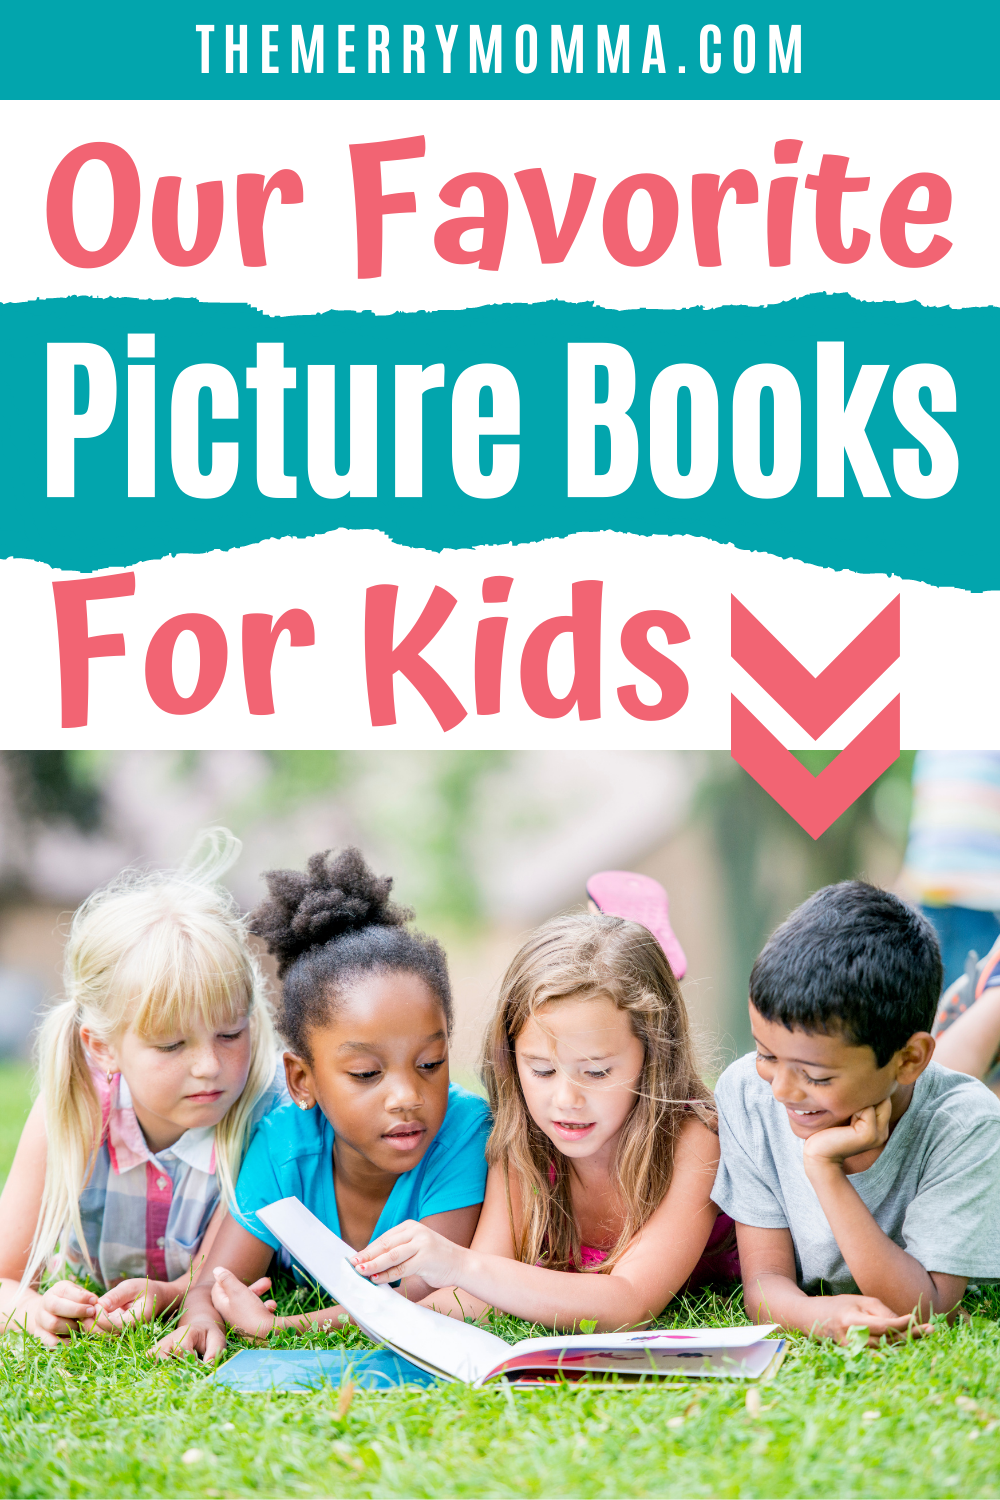 Our Favorite Picture Books for Kids PIN